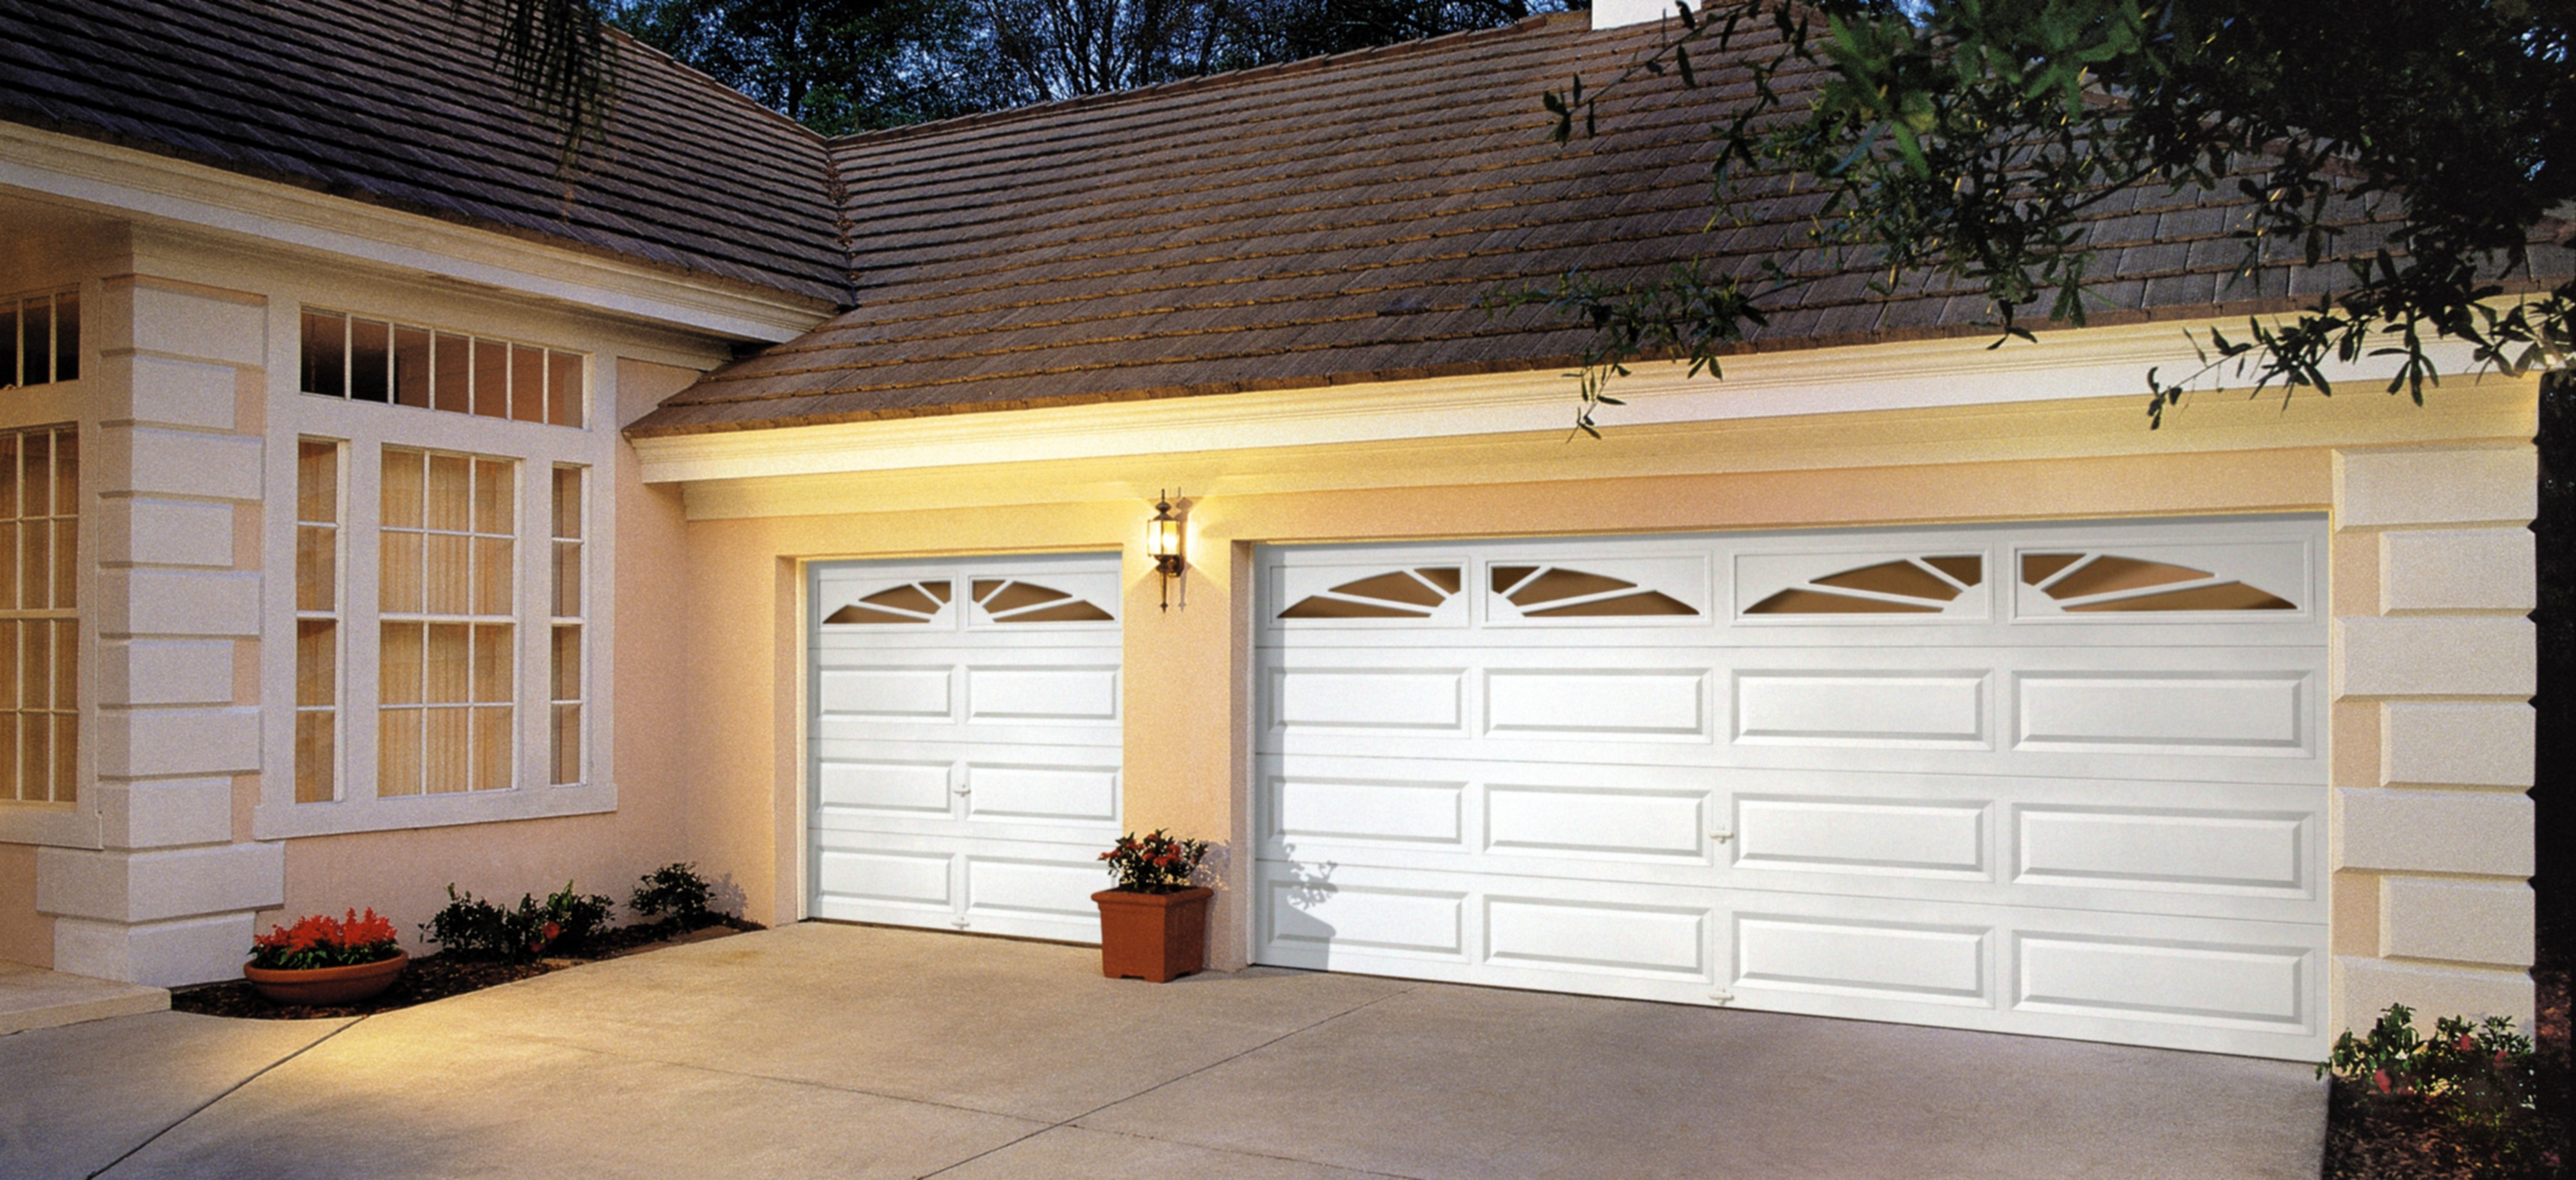 corning garages size owens kit designs doors of insulation canada alluring garage insulate hom lowes kits door full panels